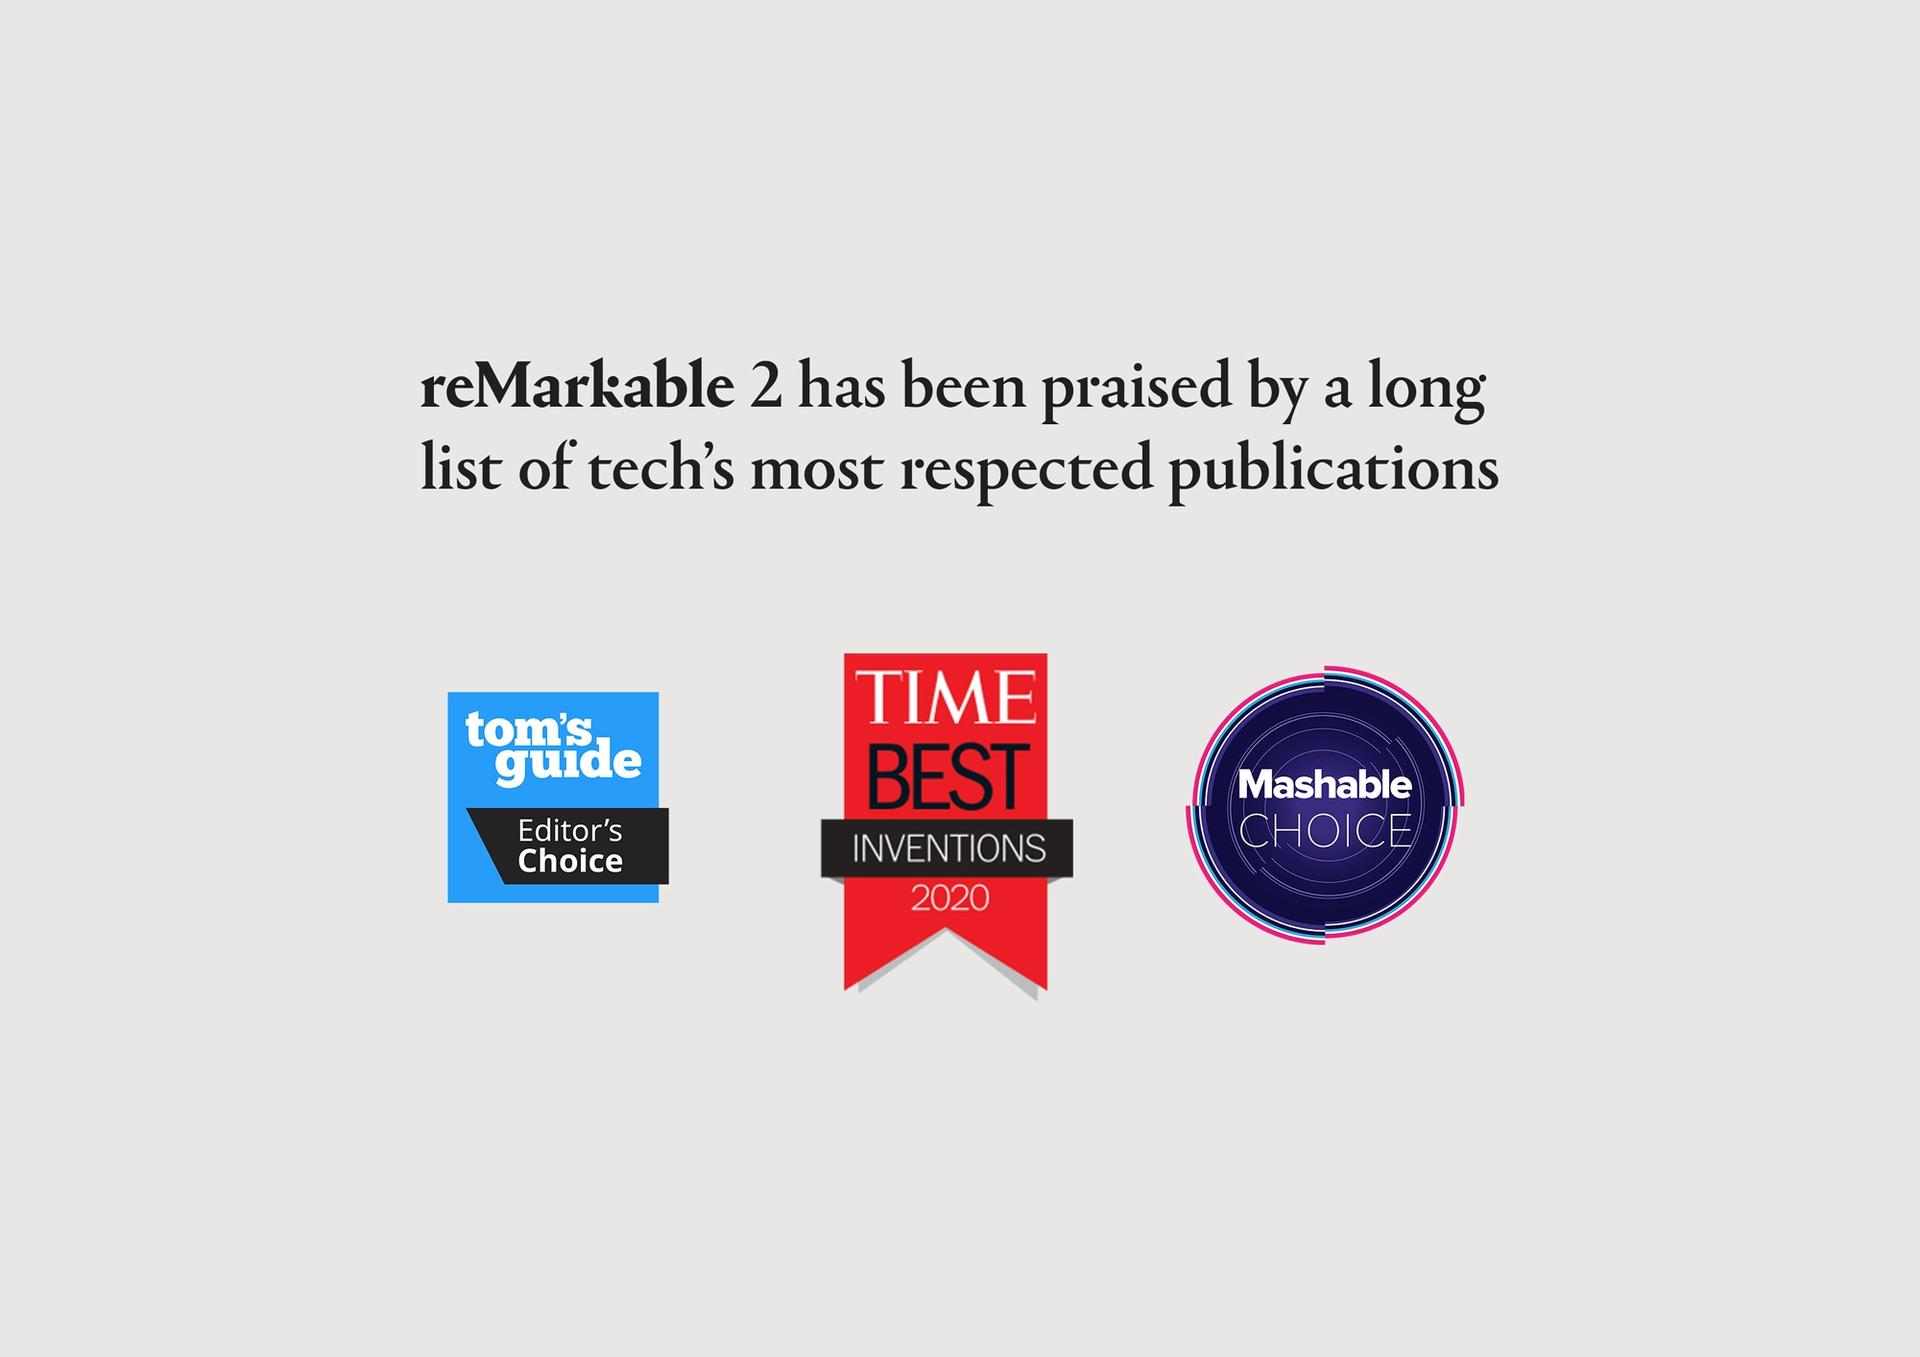 reMarkable 2 has been awarded an editor's choice from respected publications like tom's guide and Mashable